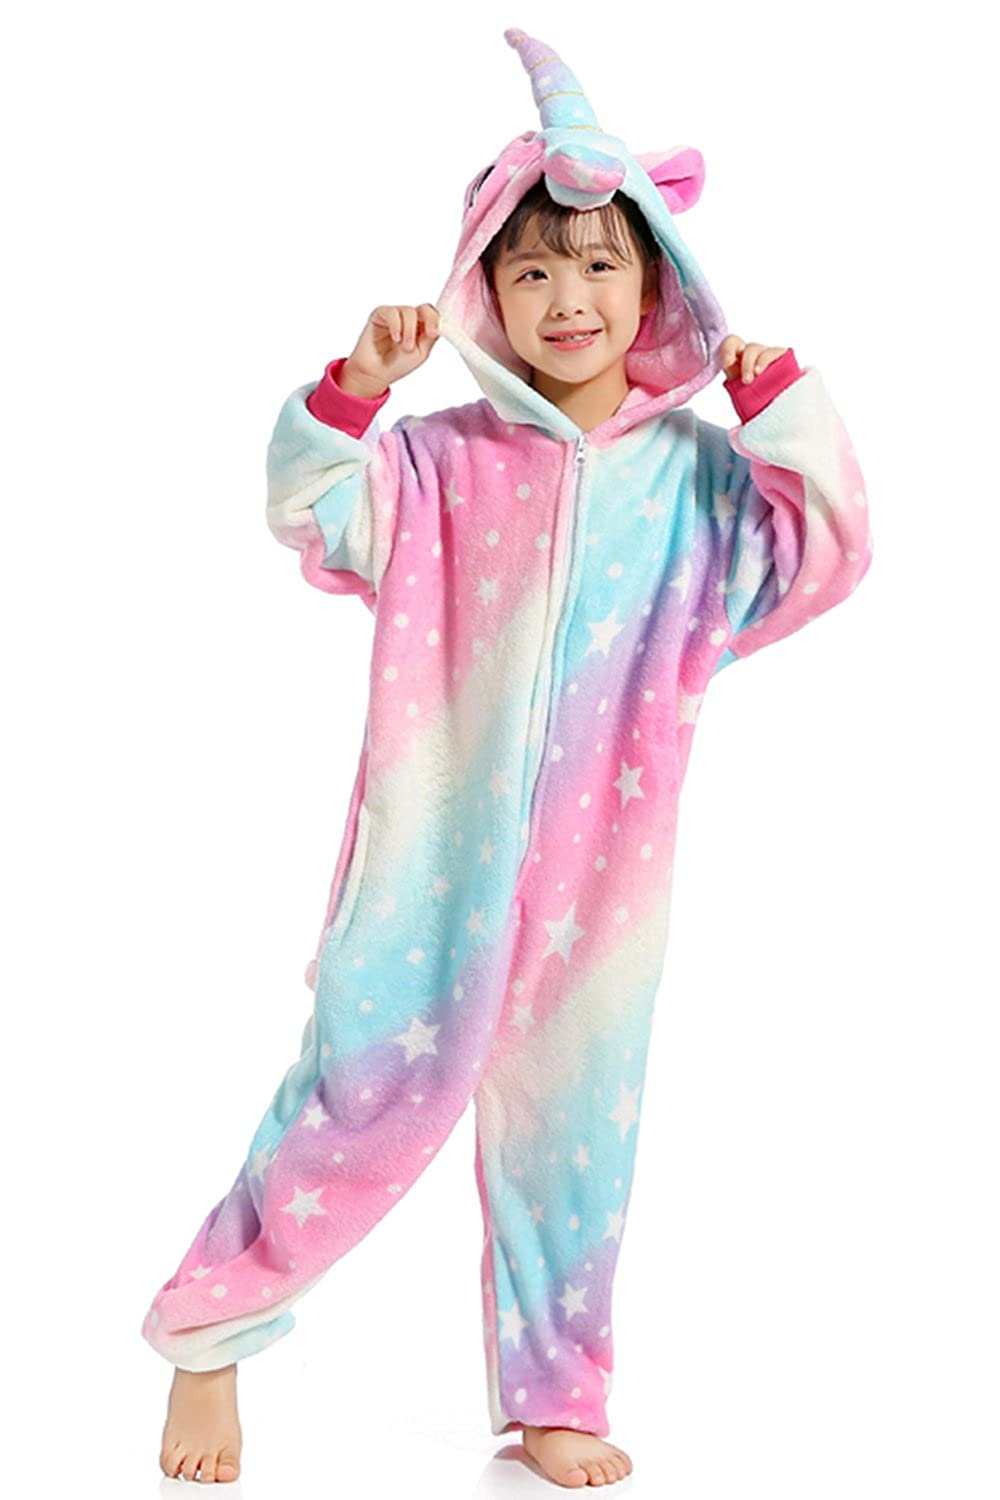 Mystery&Melody Unicorn Pajamas Animal Cosplay Halloween Costume Hoodie Outfit